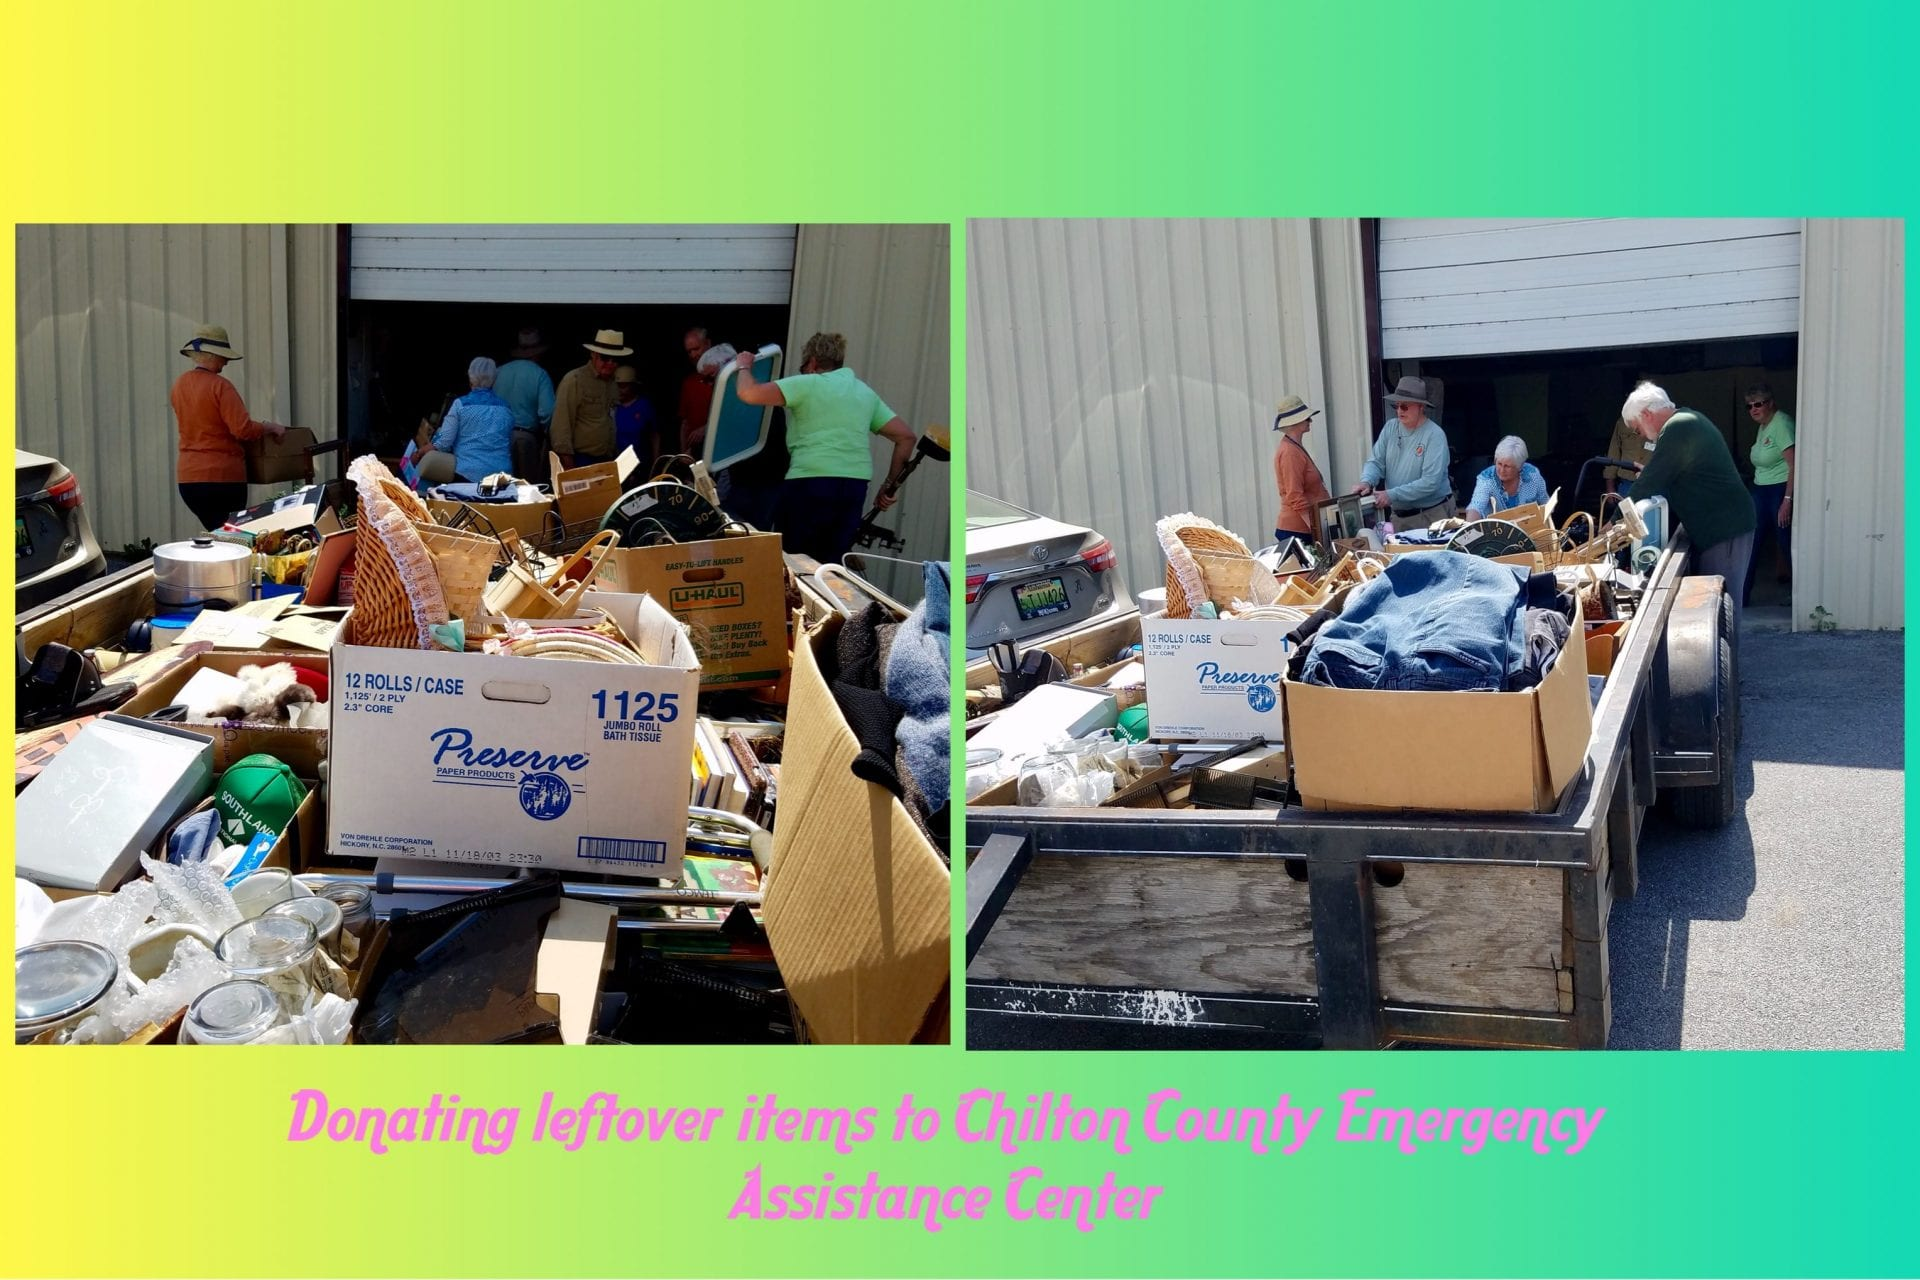 Donating leftover items from yard sale